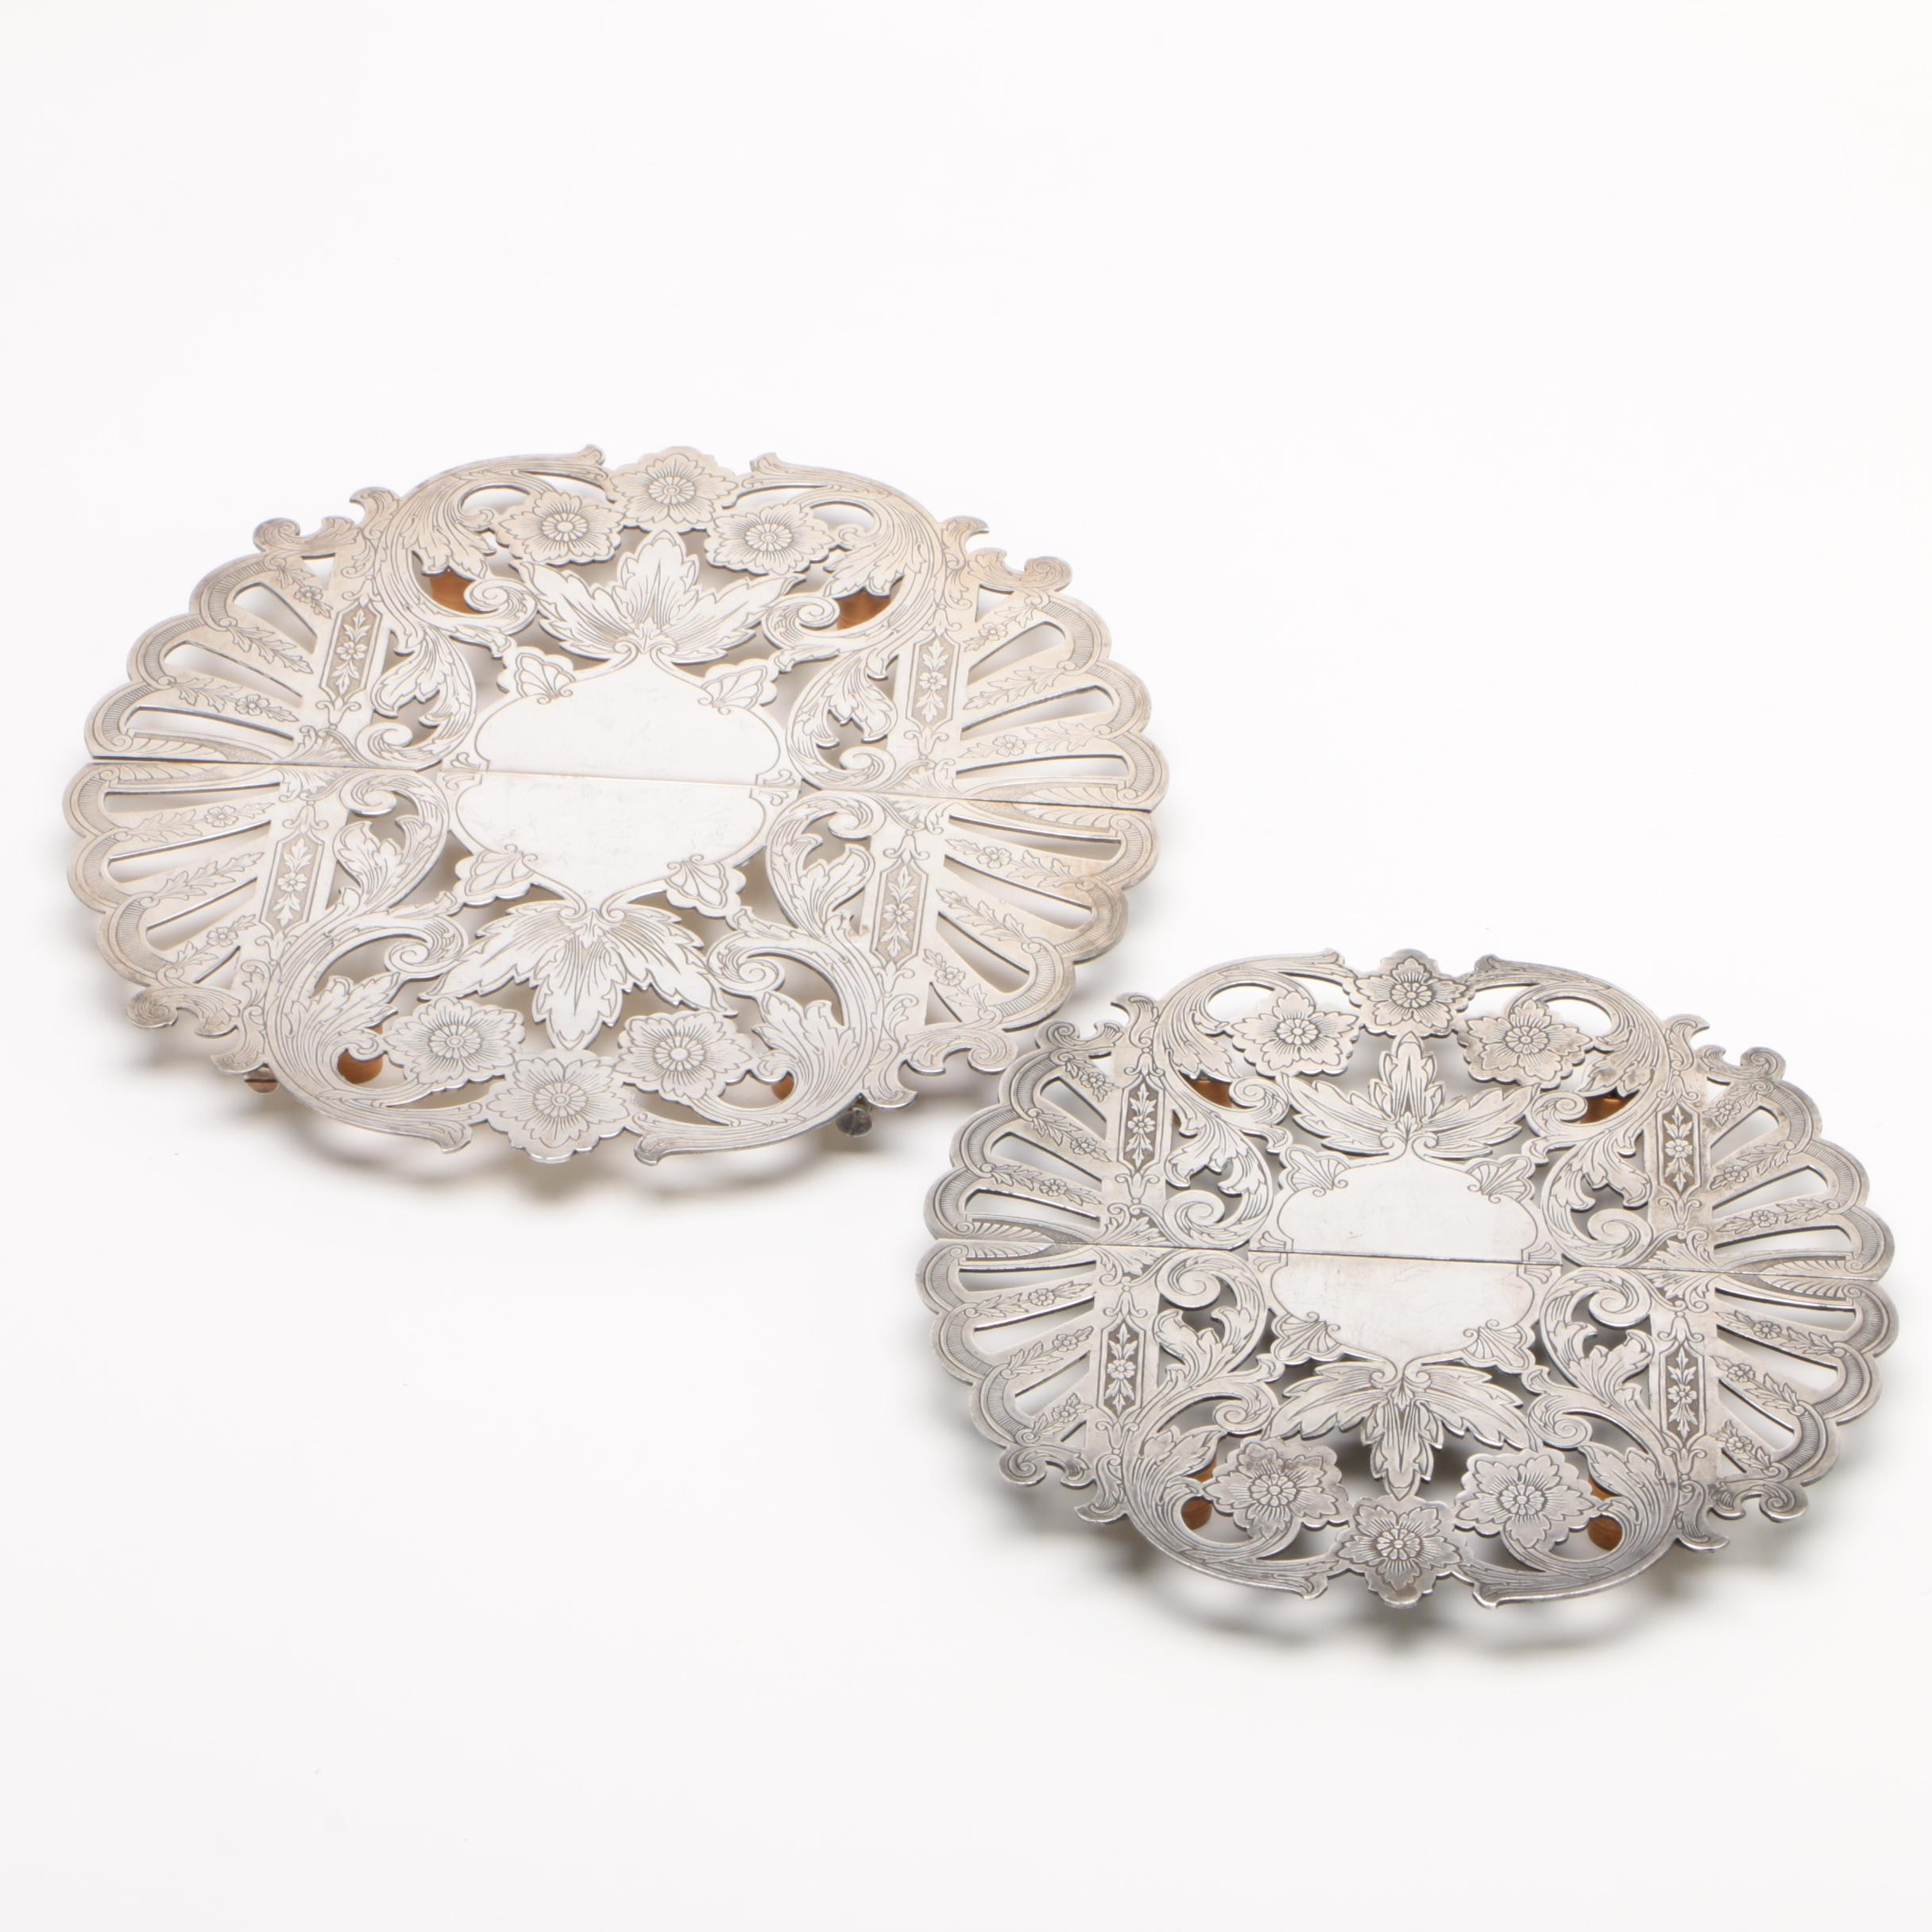 Wallace Chased Silver Plate Expandable Trivets, Early 20th Century